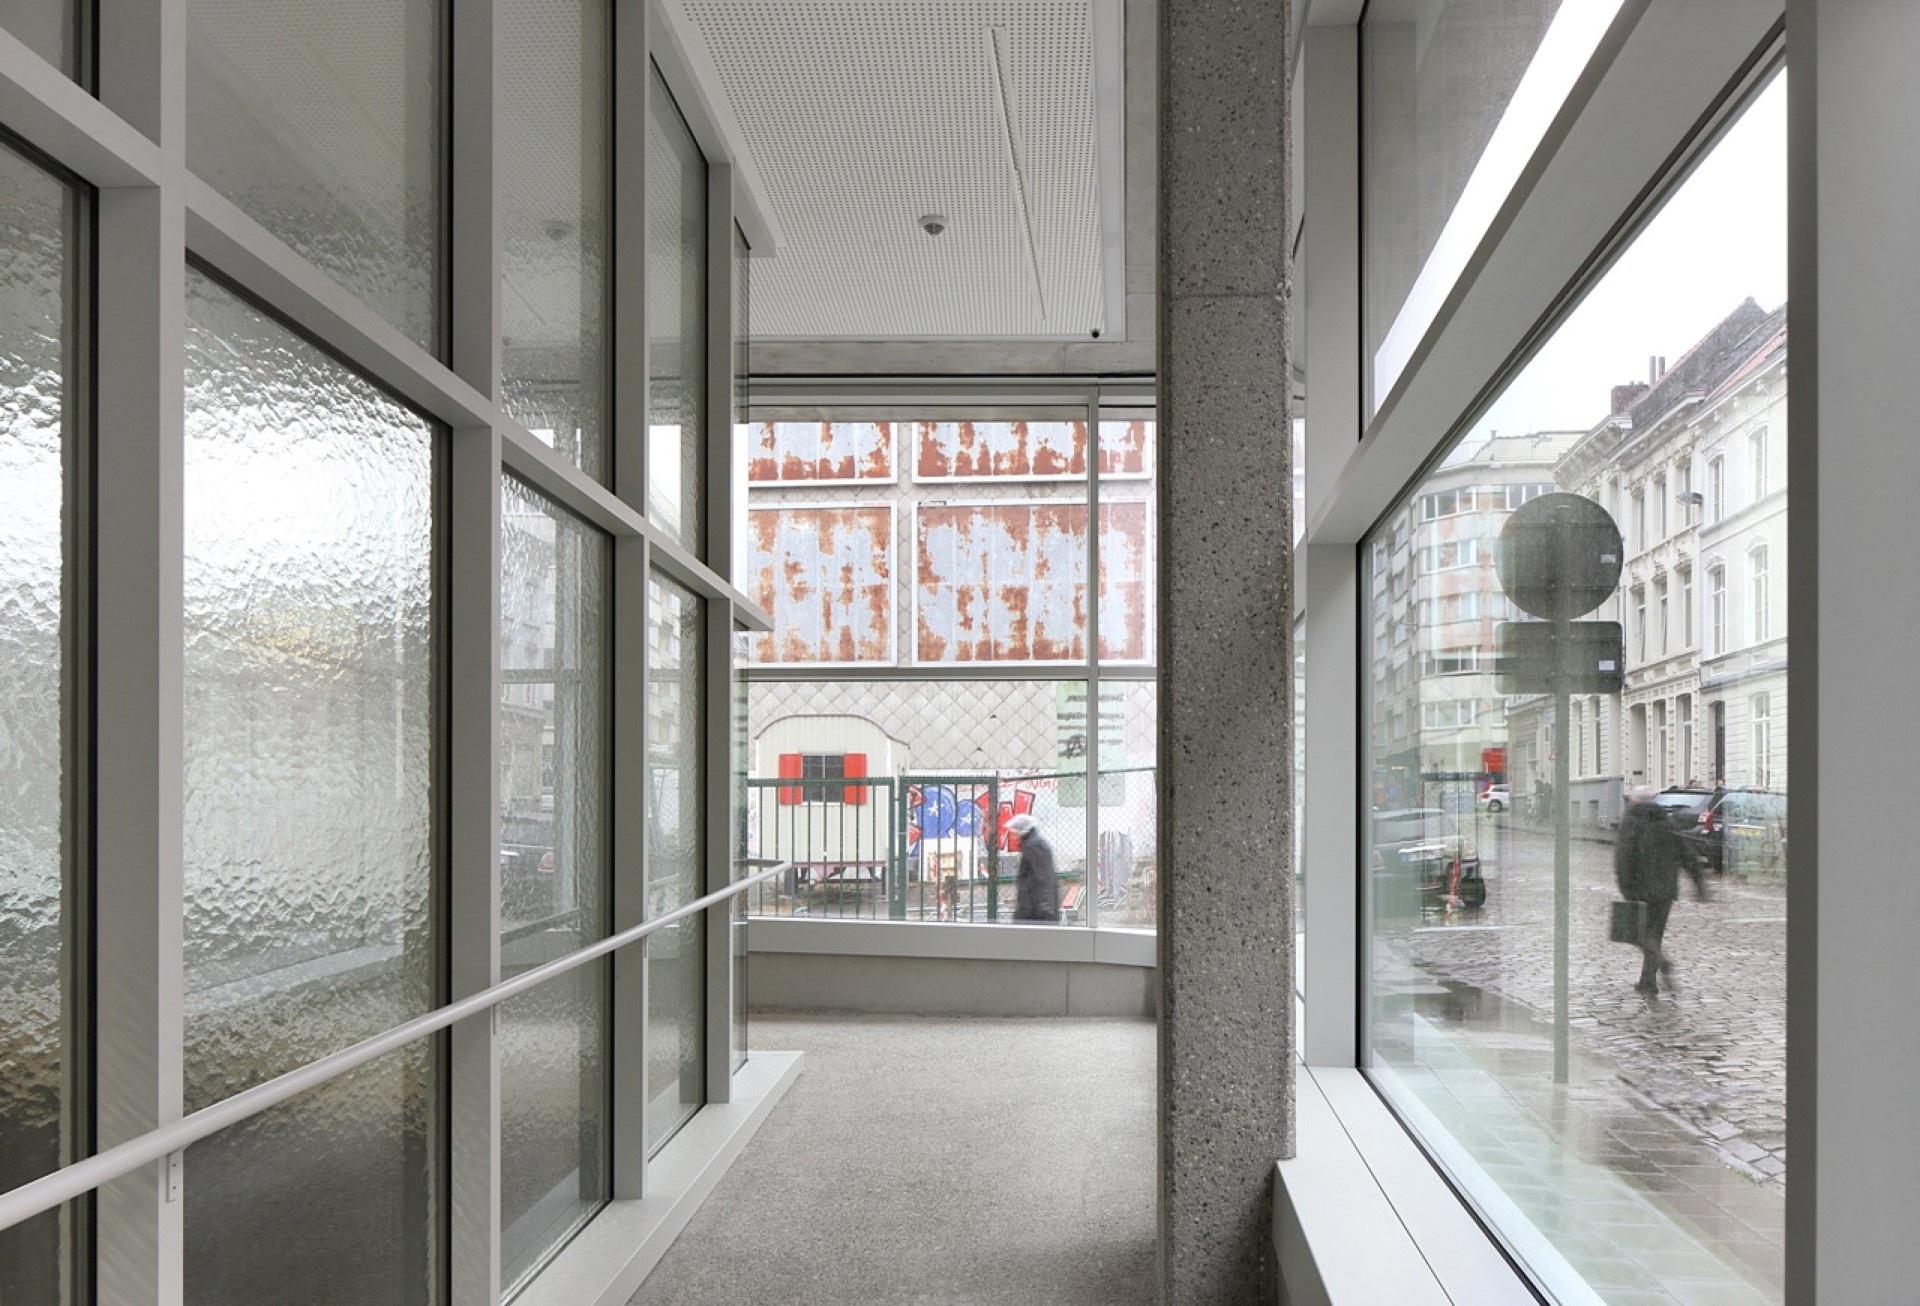 Rijksarchief Gent library building architecture design interior view